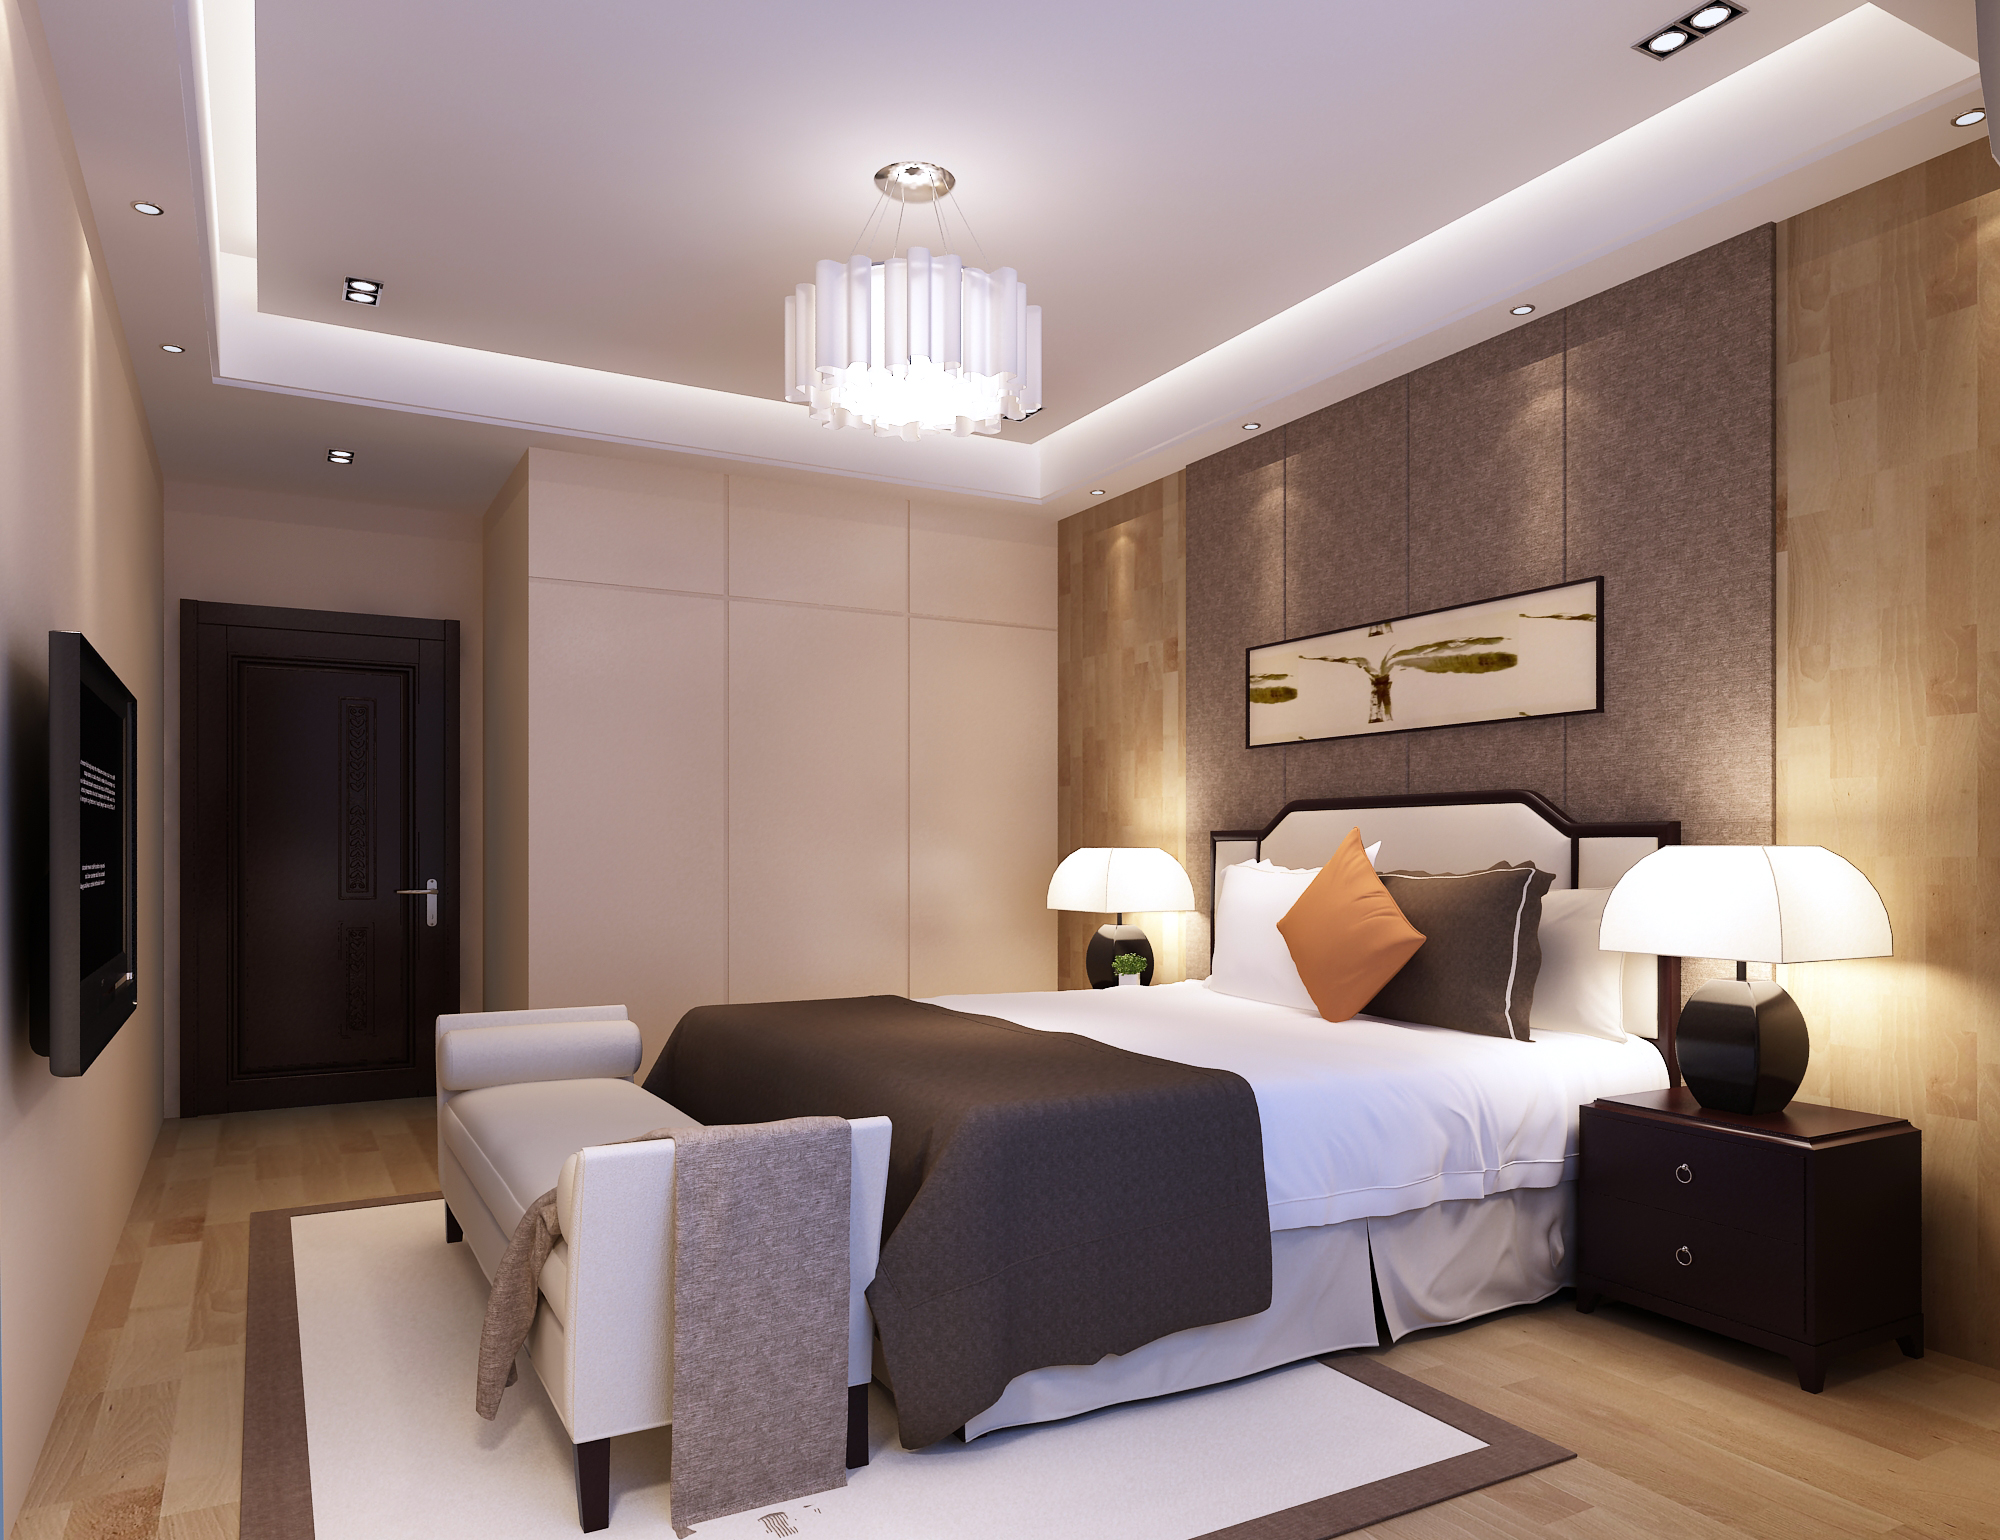 Bedroom Interior Scene For 3ds Max